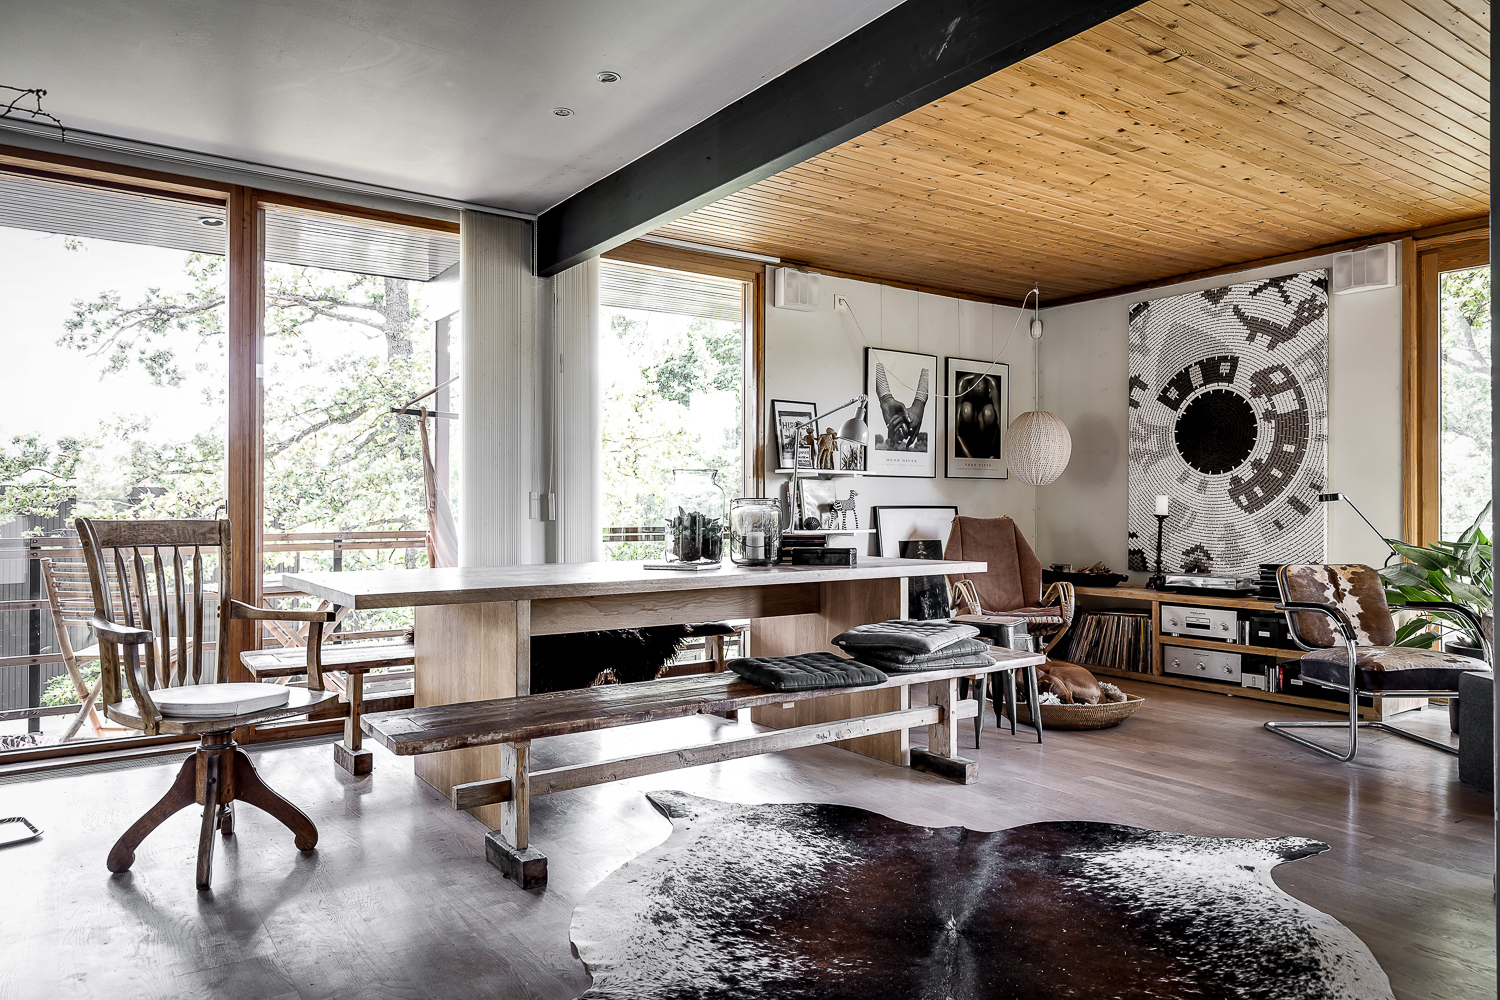 Scandinavian villa with oriental and rustic decor containing tolix chairs, Arne jacobsen lamp, cowhide chair. Dining room